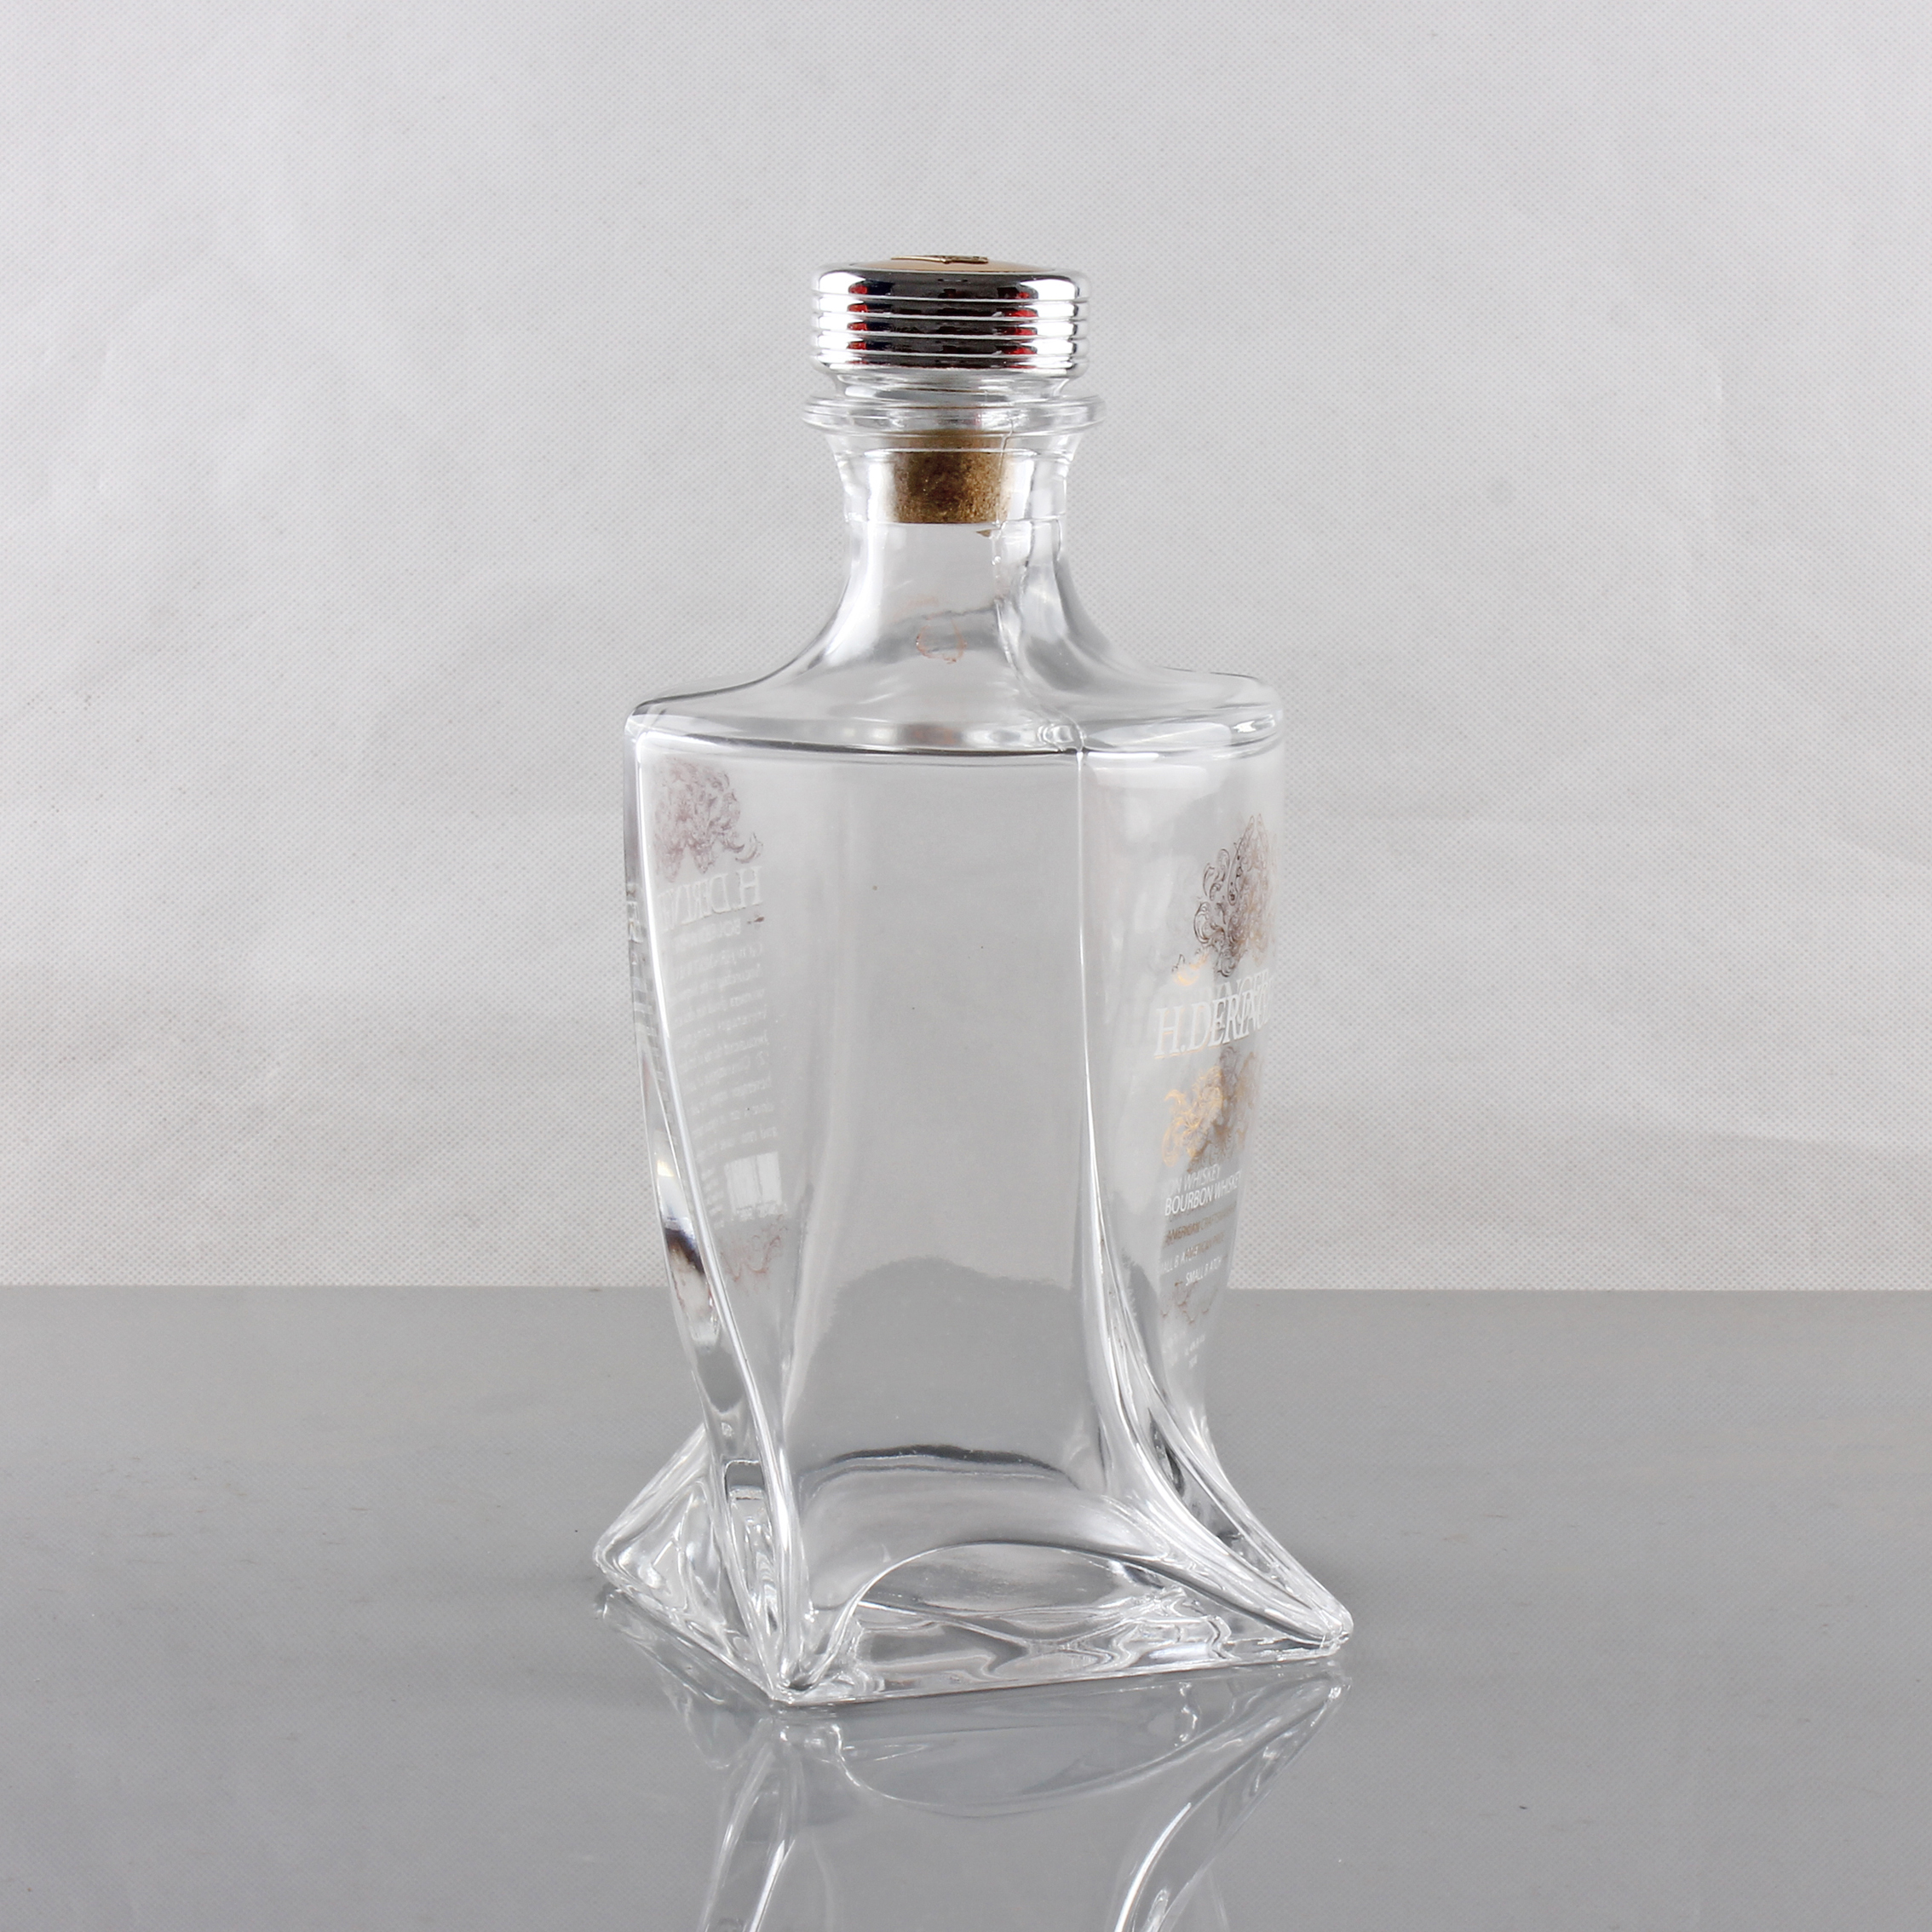 Uísque de 750 ml Flint Glass 750ml venda de garrafas de licor vazio